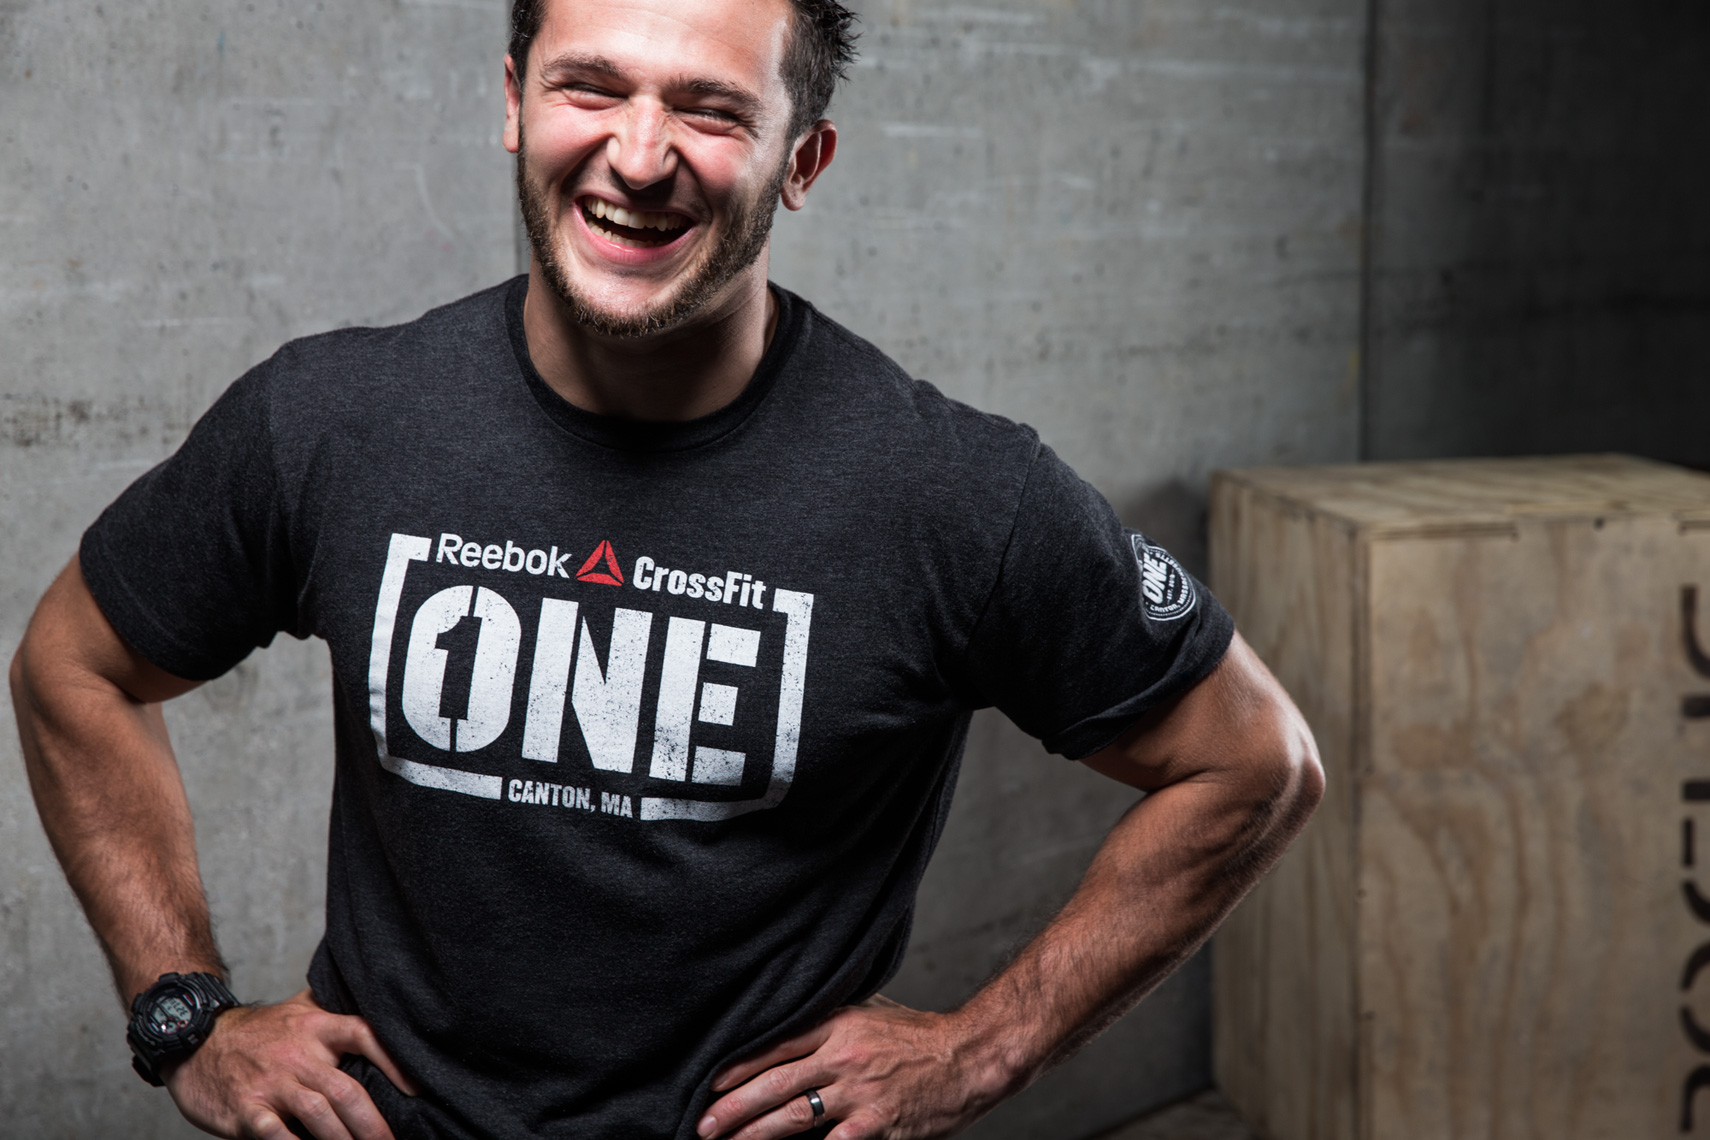 Los Angeles Sports Photography, Michael Brian, Laughing portrait of Crossfit Games athlete Austin Malleolo, Crossfit One Nation, Reebok, Rogue